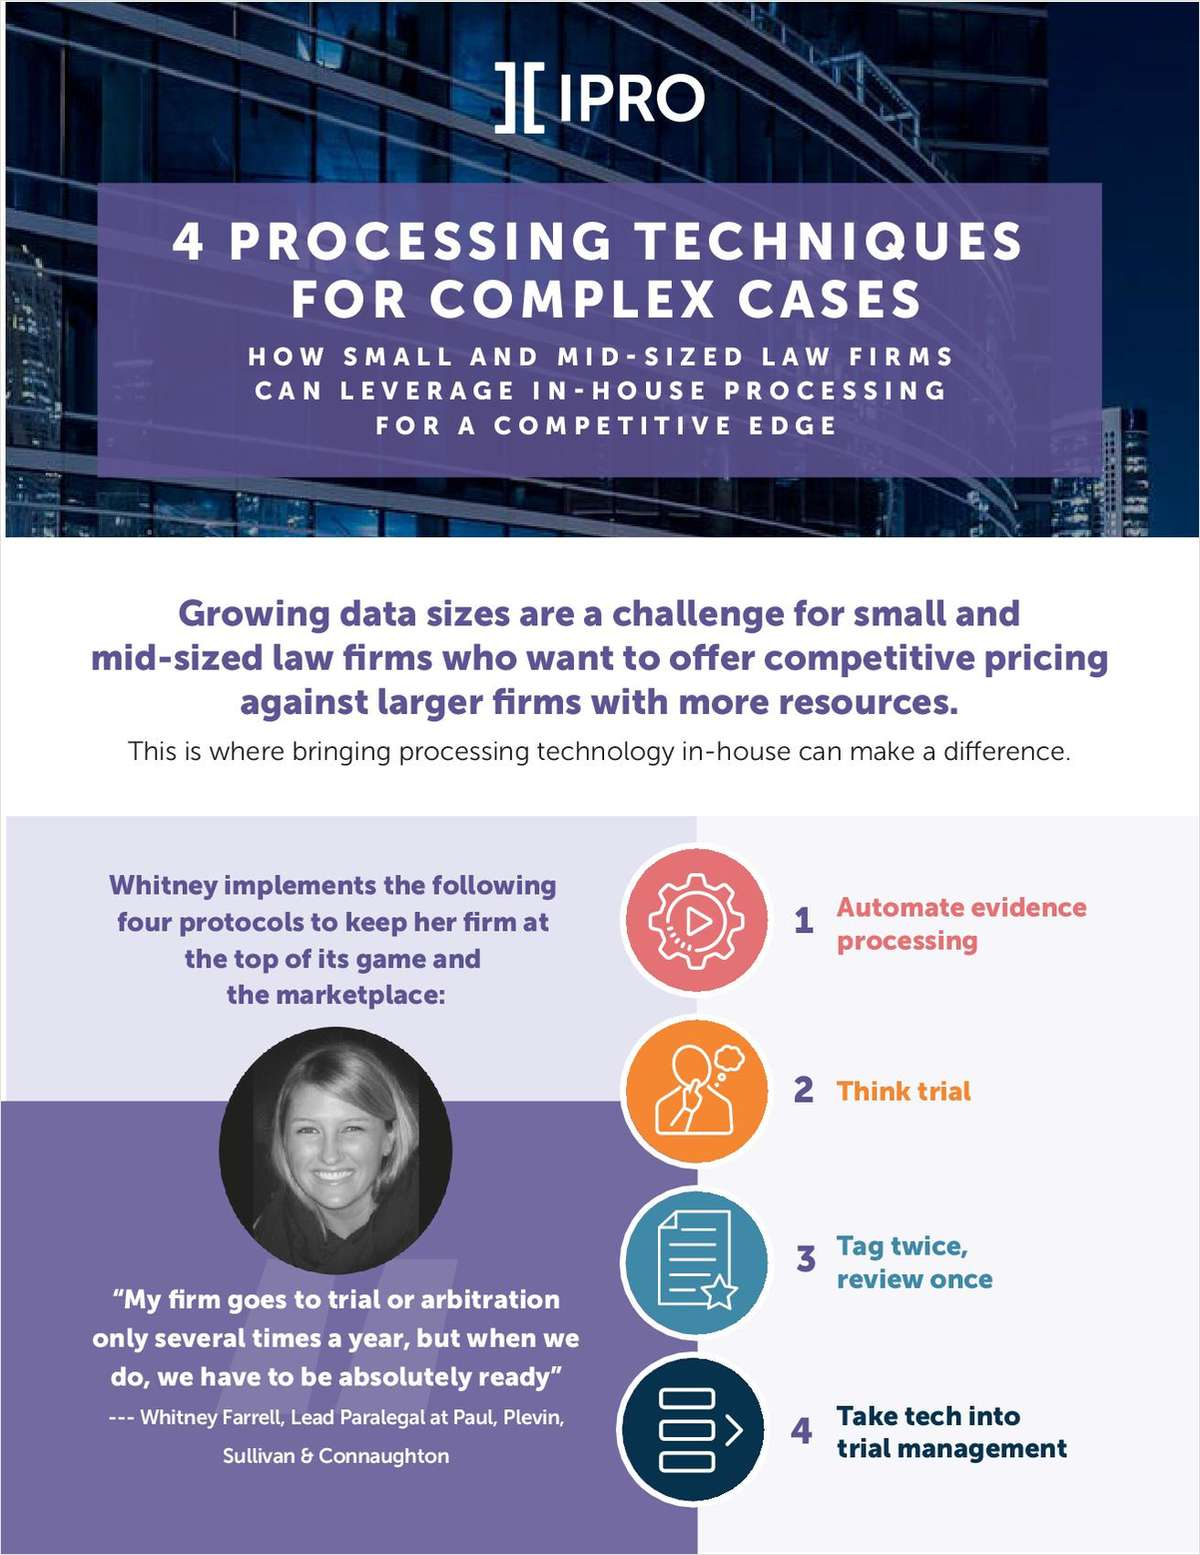 4 Processing Techniques for Complex Cases - How Small and Mid-sized Firms Can Excel